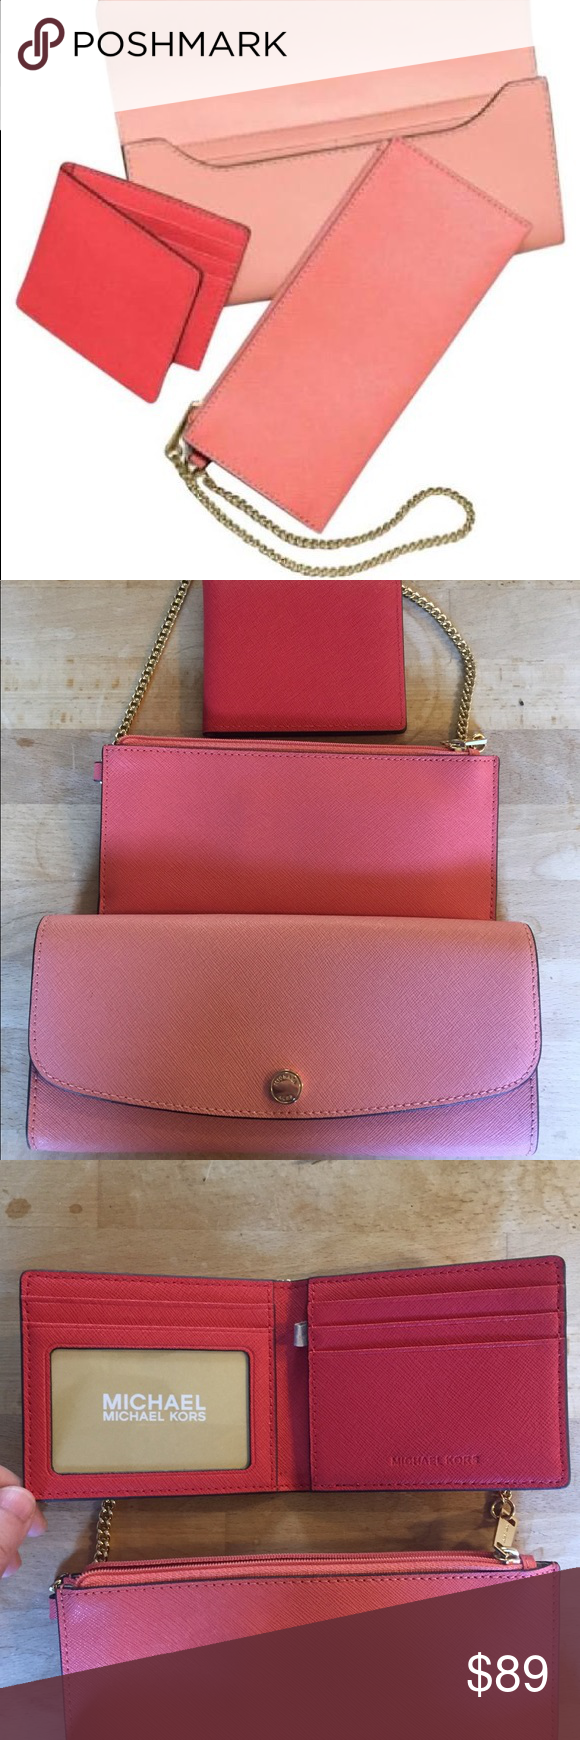 2c8adb4a11e2 Michael Kors Pink Juliana Large 3 In 1 Wallet Michael Kors Peach / Coral Juliana  Large 3 In 1 Wallet Material: saffiano leather 9